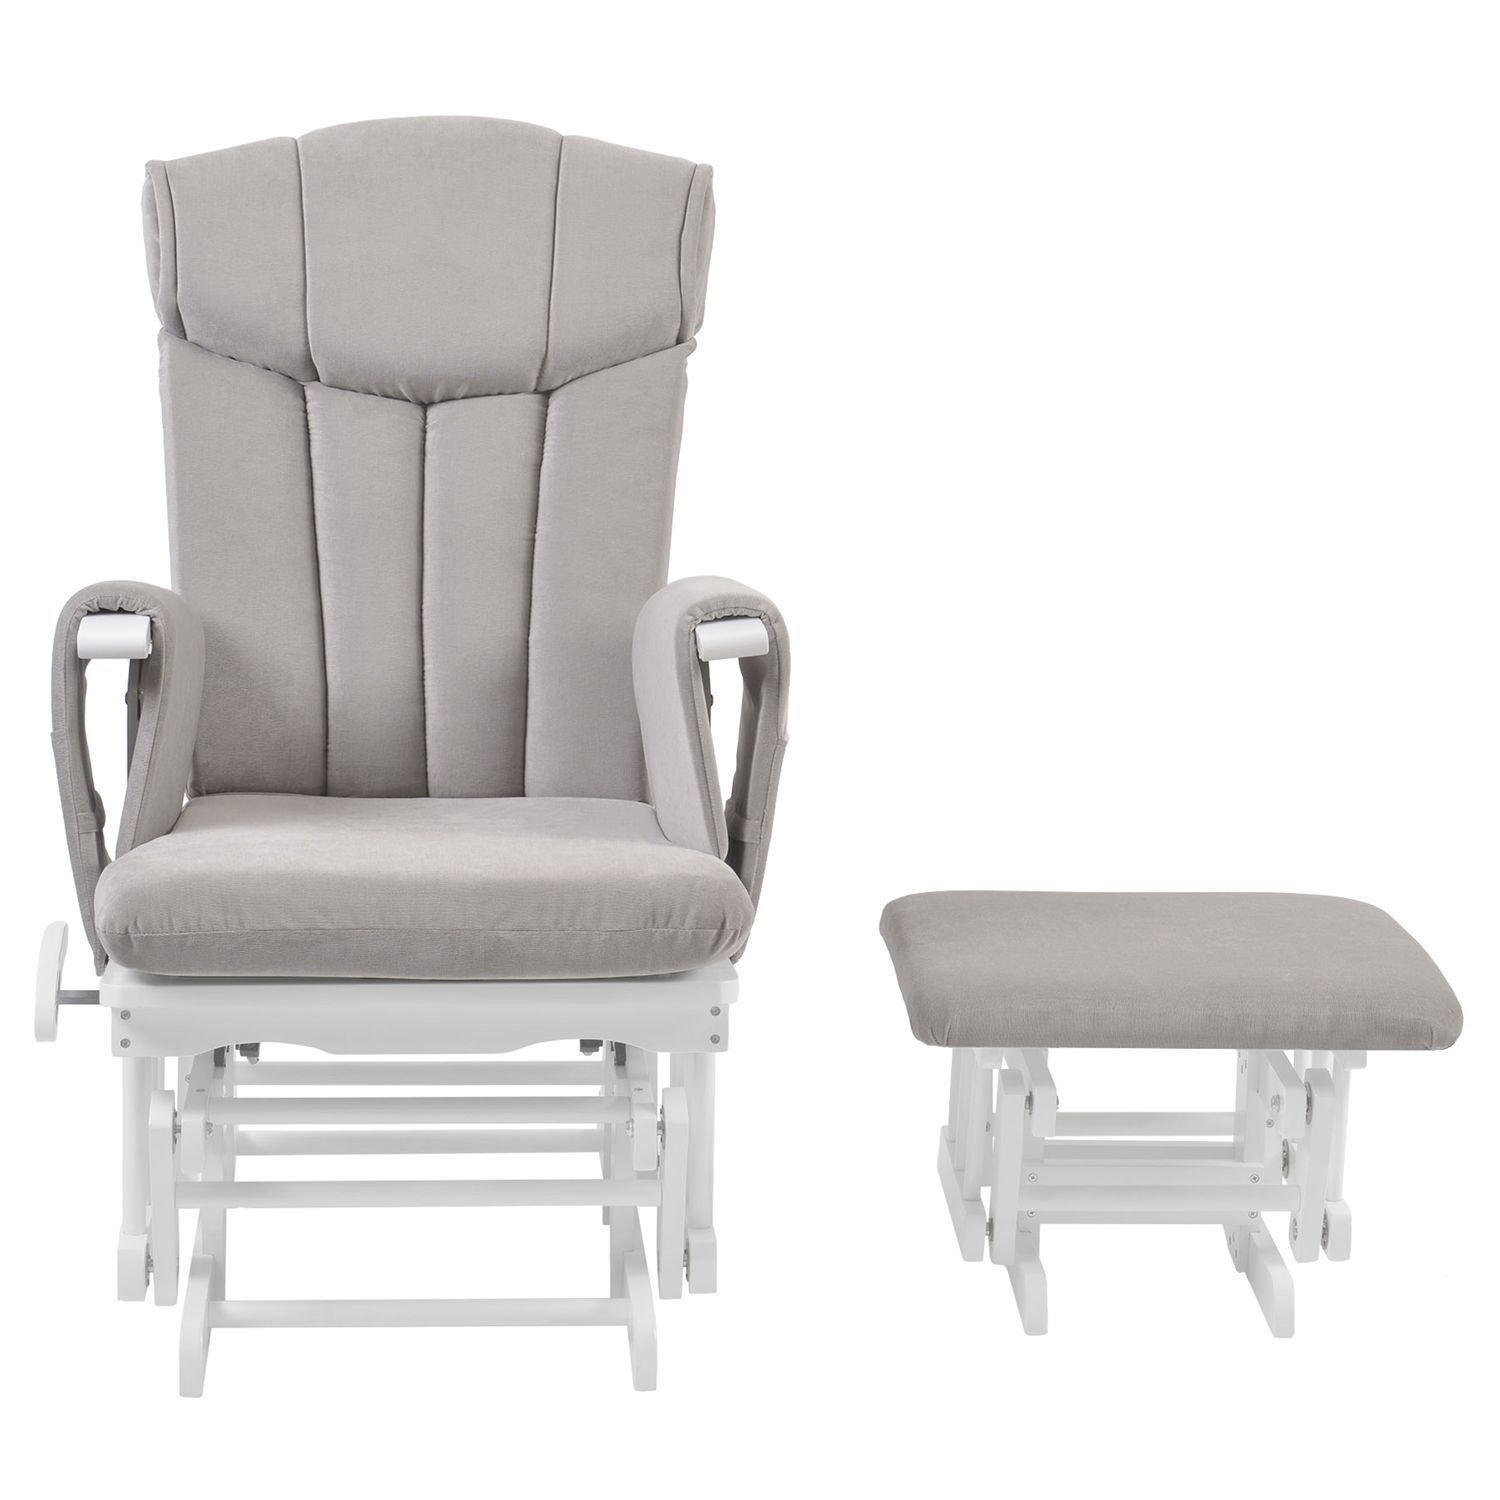 Groovy Kub Chatsworth Glider Nursing Chair And Foot Stool Grey Ncnpc Chair Design For Home Ncnpcorg